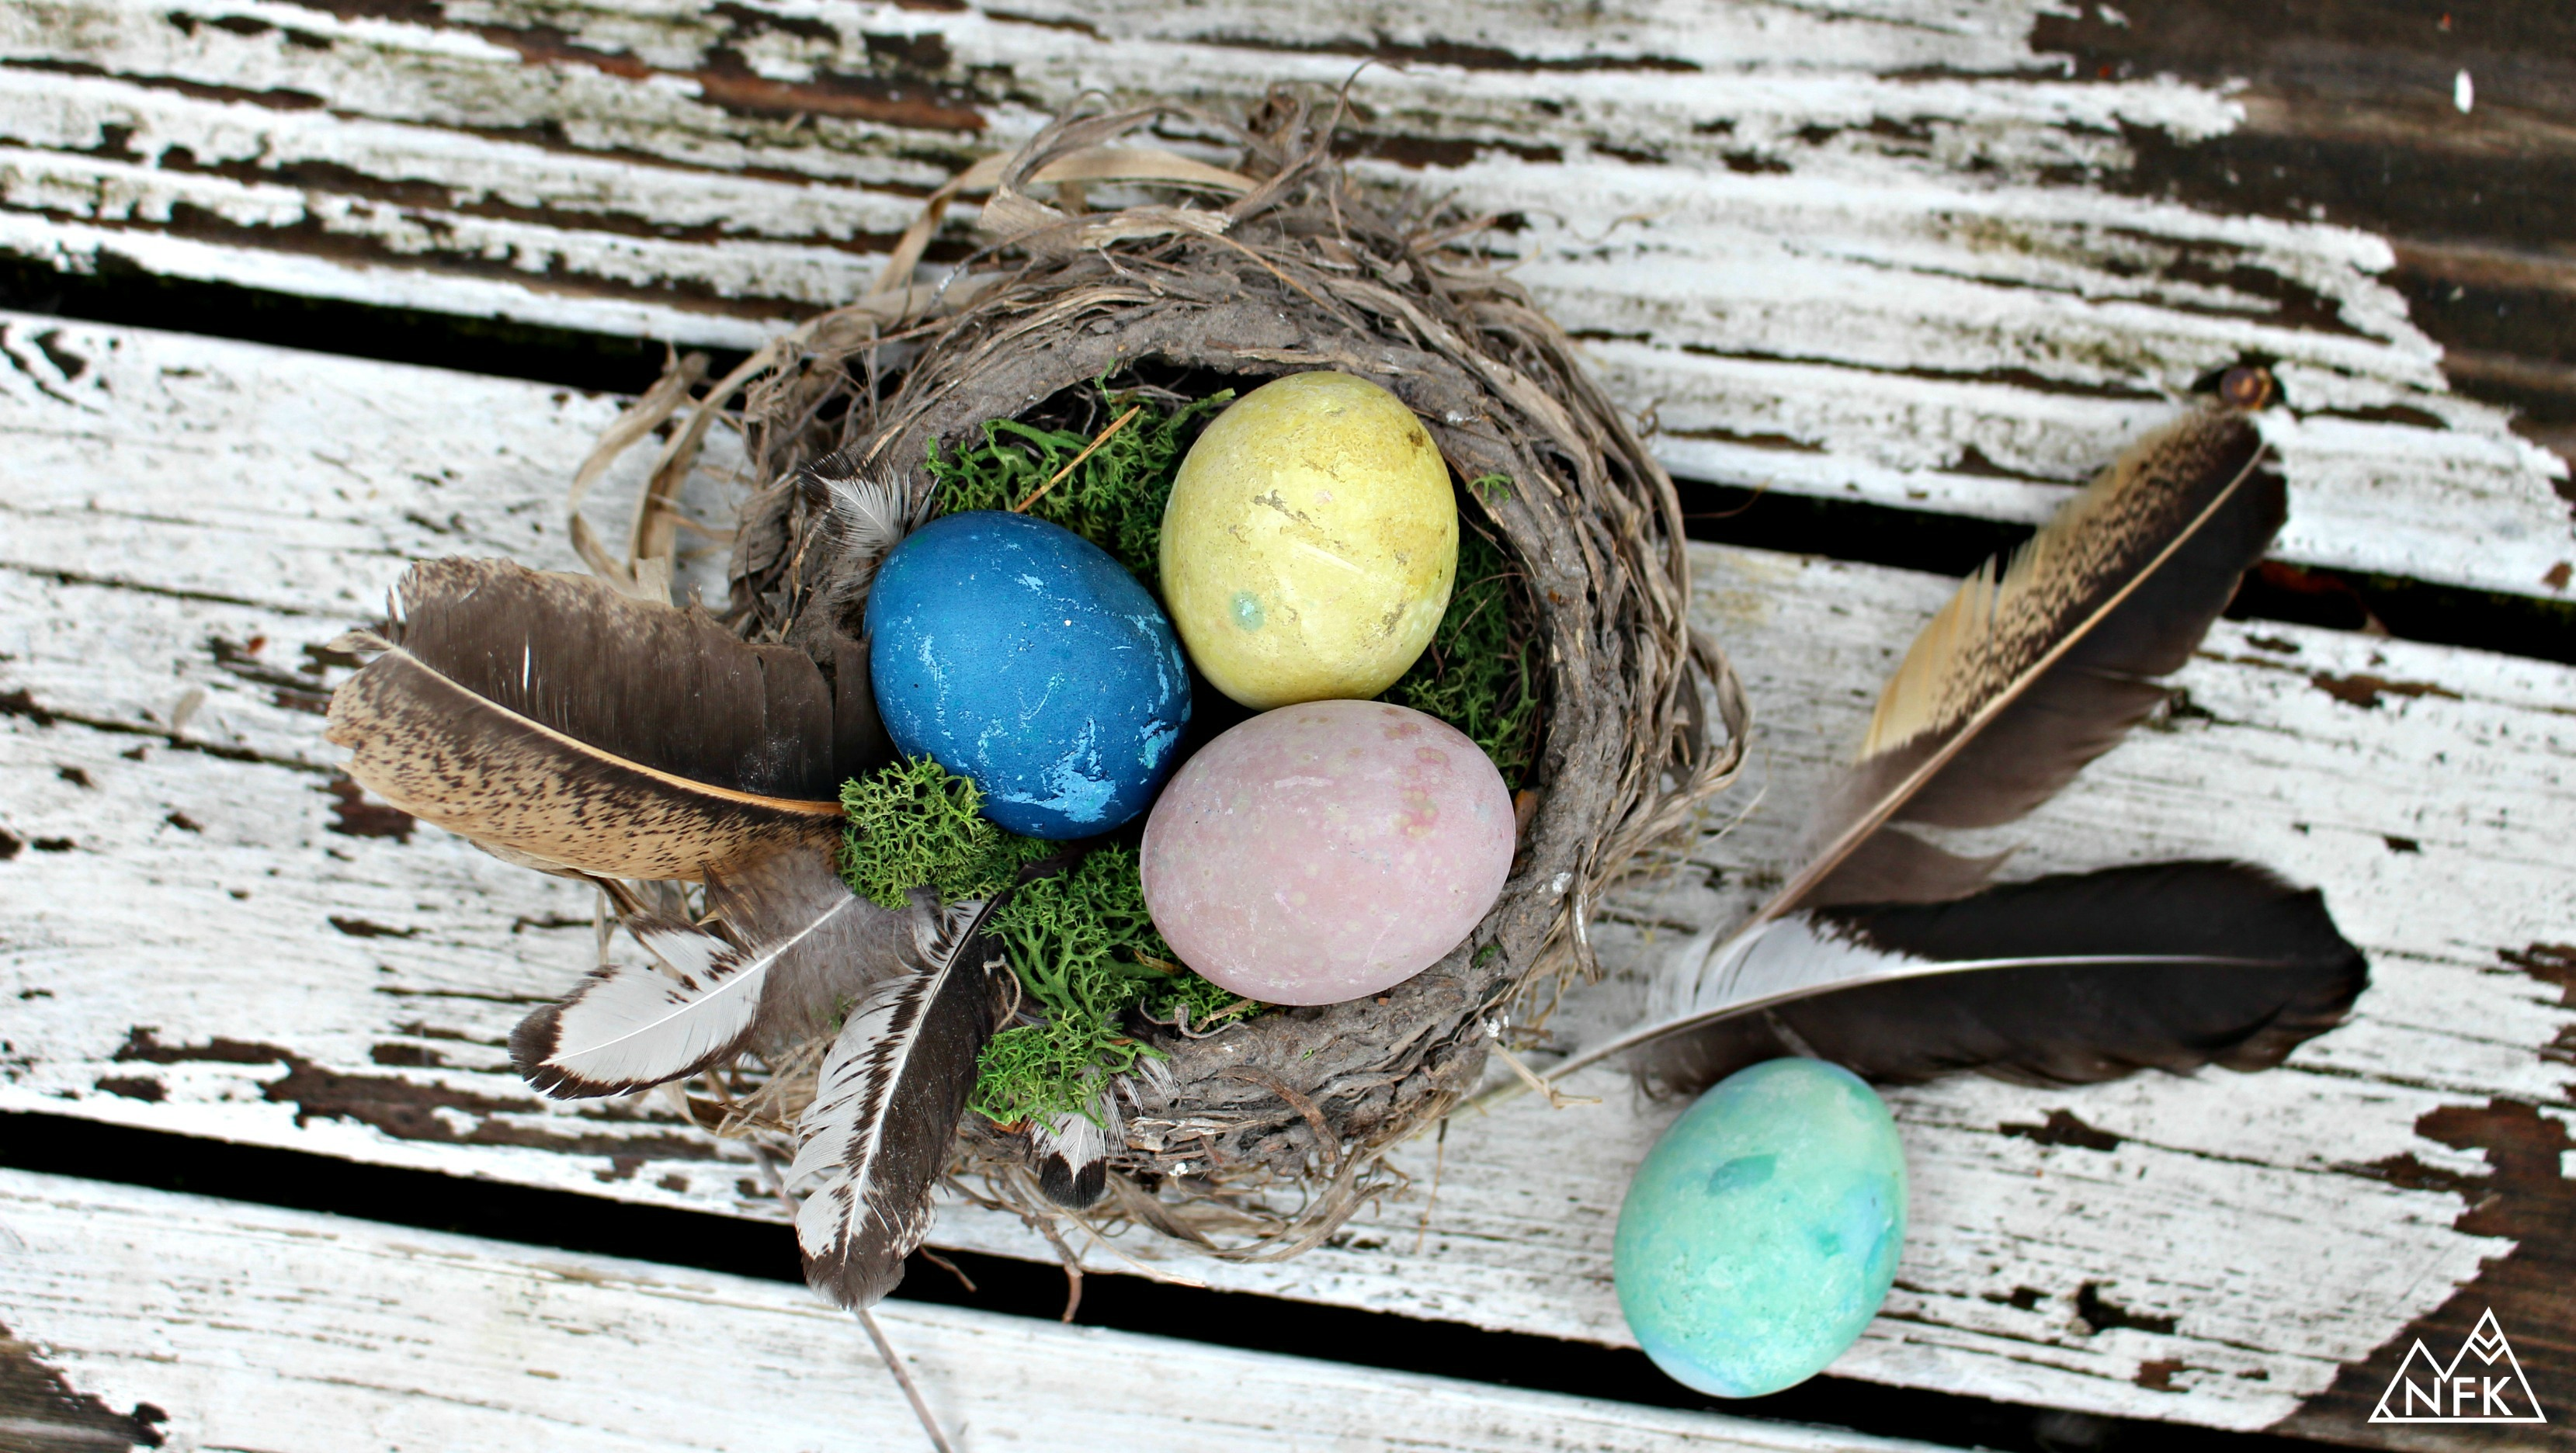 How To Dye Eggs Naturally – A Fun Easter Craft For Kids